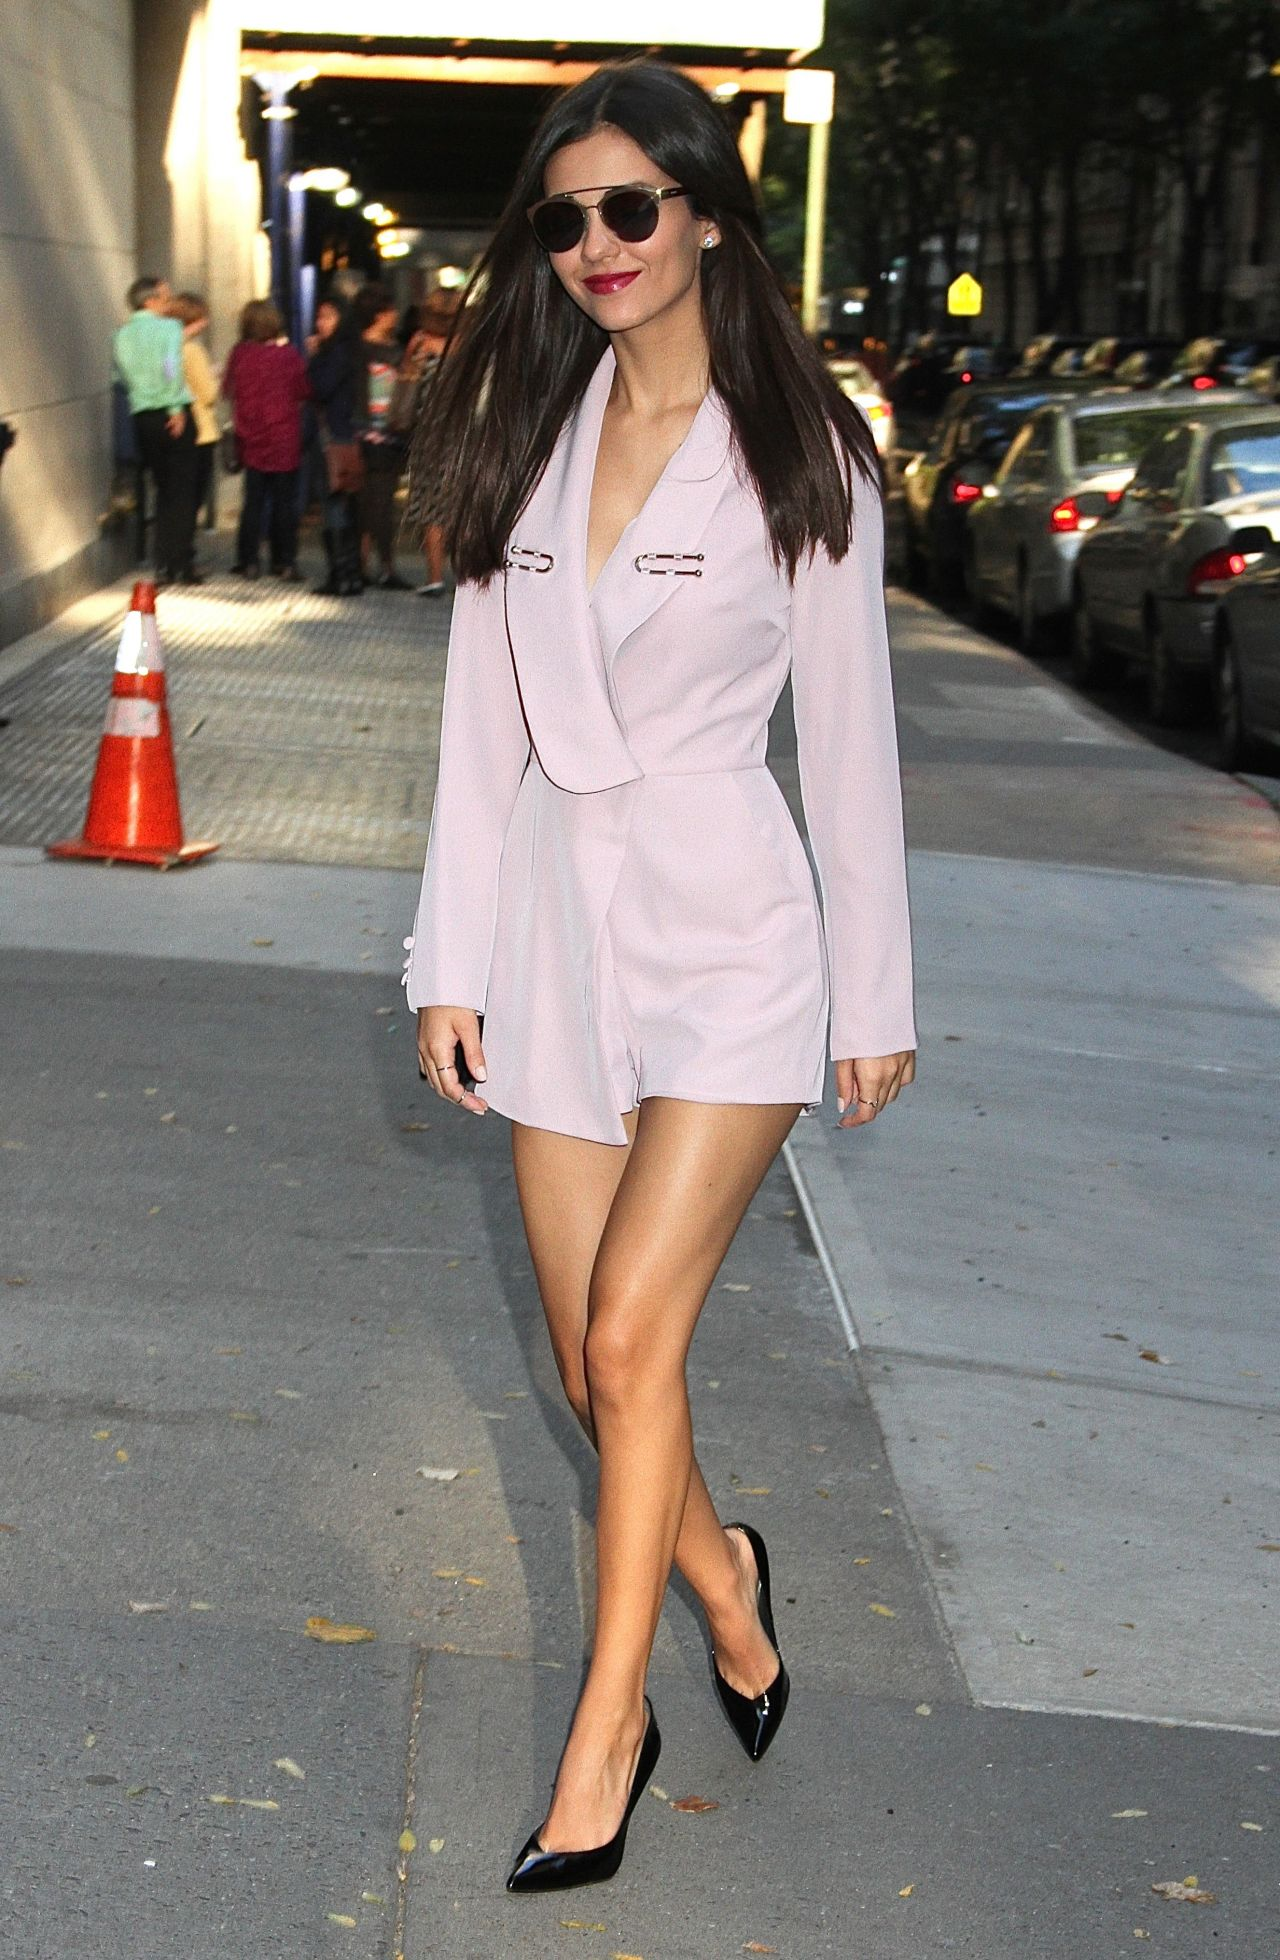 victoria-justice-arriving-at-the-chew-in-nyc-10-19-2016-4